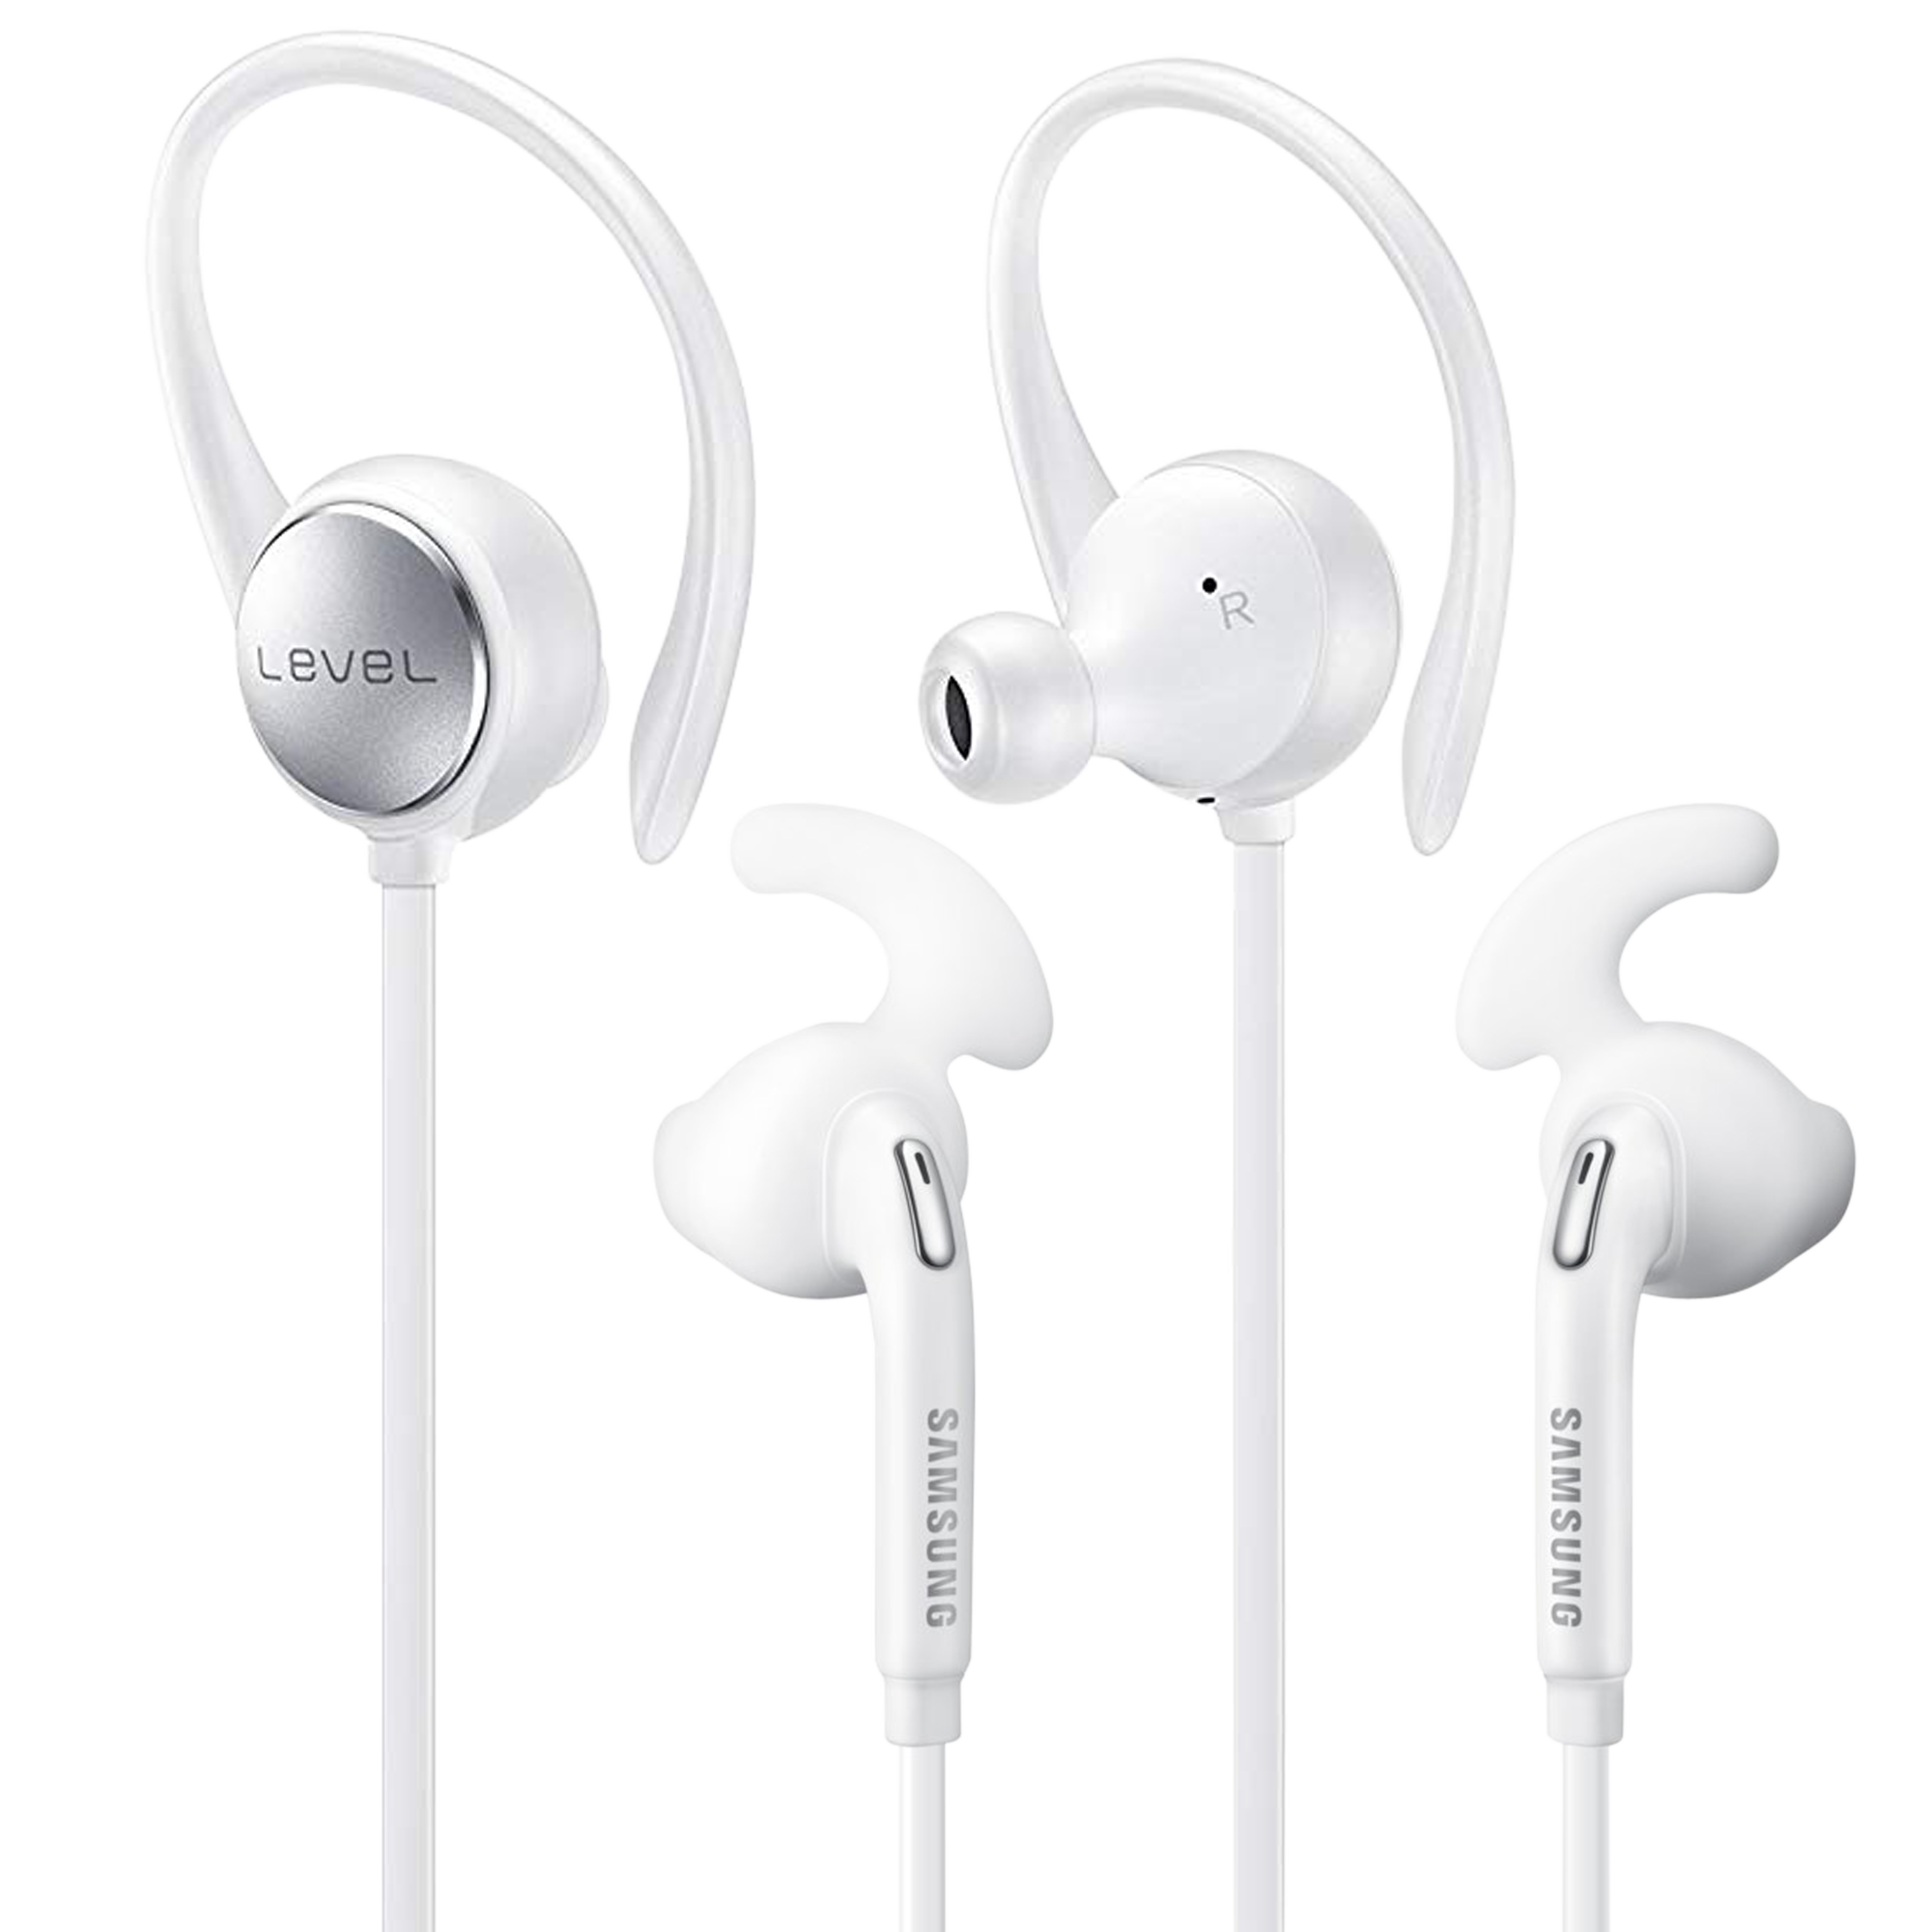 Samsung Level Active Bluetooth Wireless + Wired Headphones Bundle (White) $19 Shipped